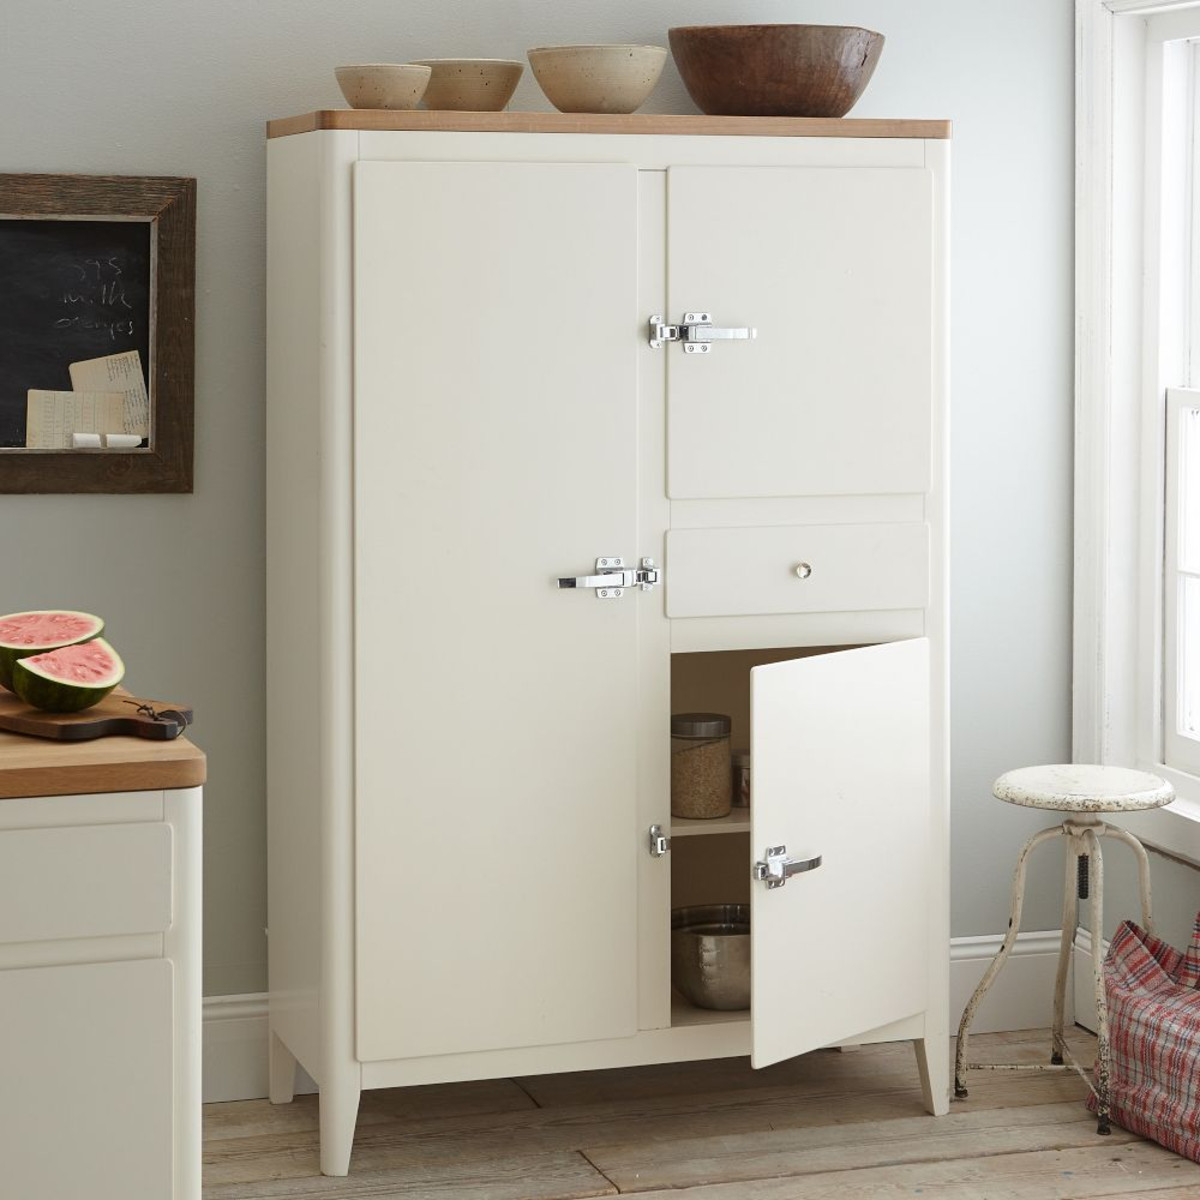 Freestanding Kitchen Cupboard From Westelm